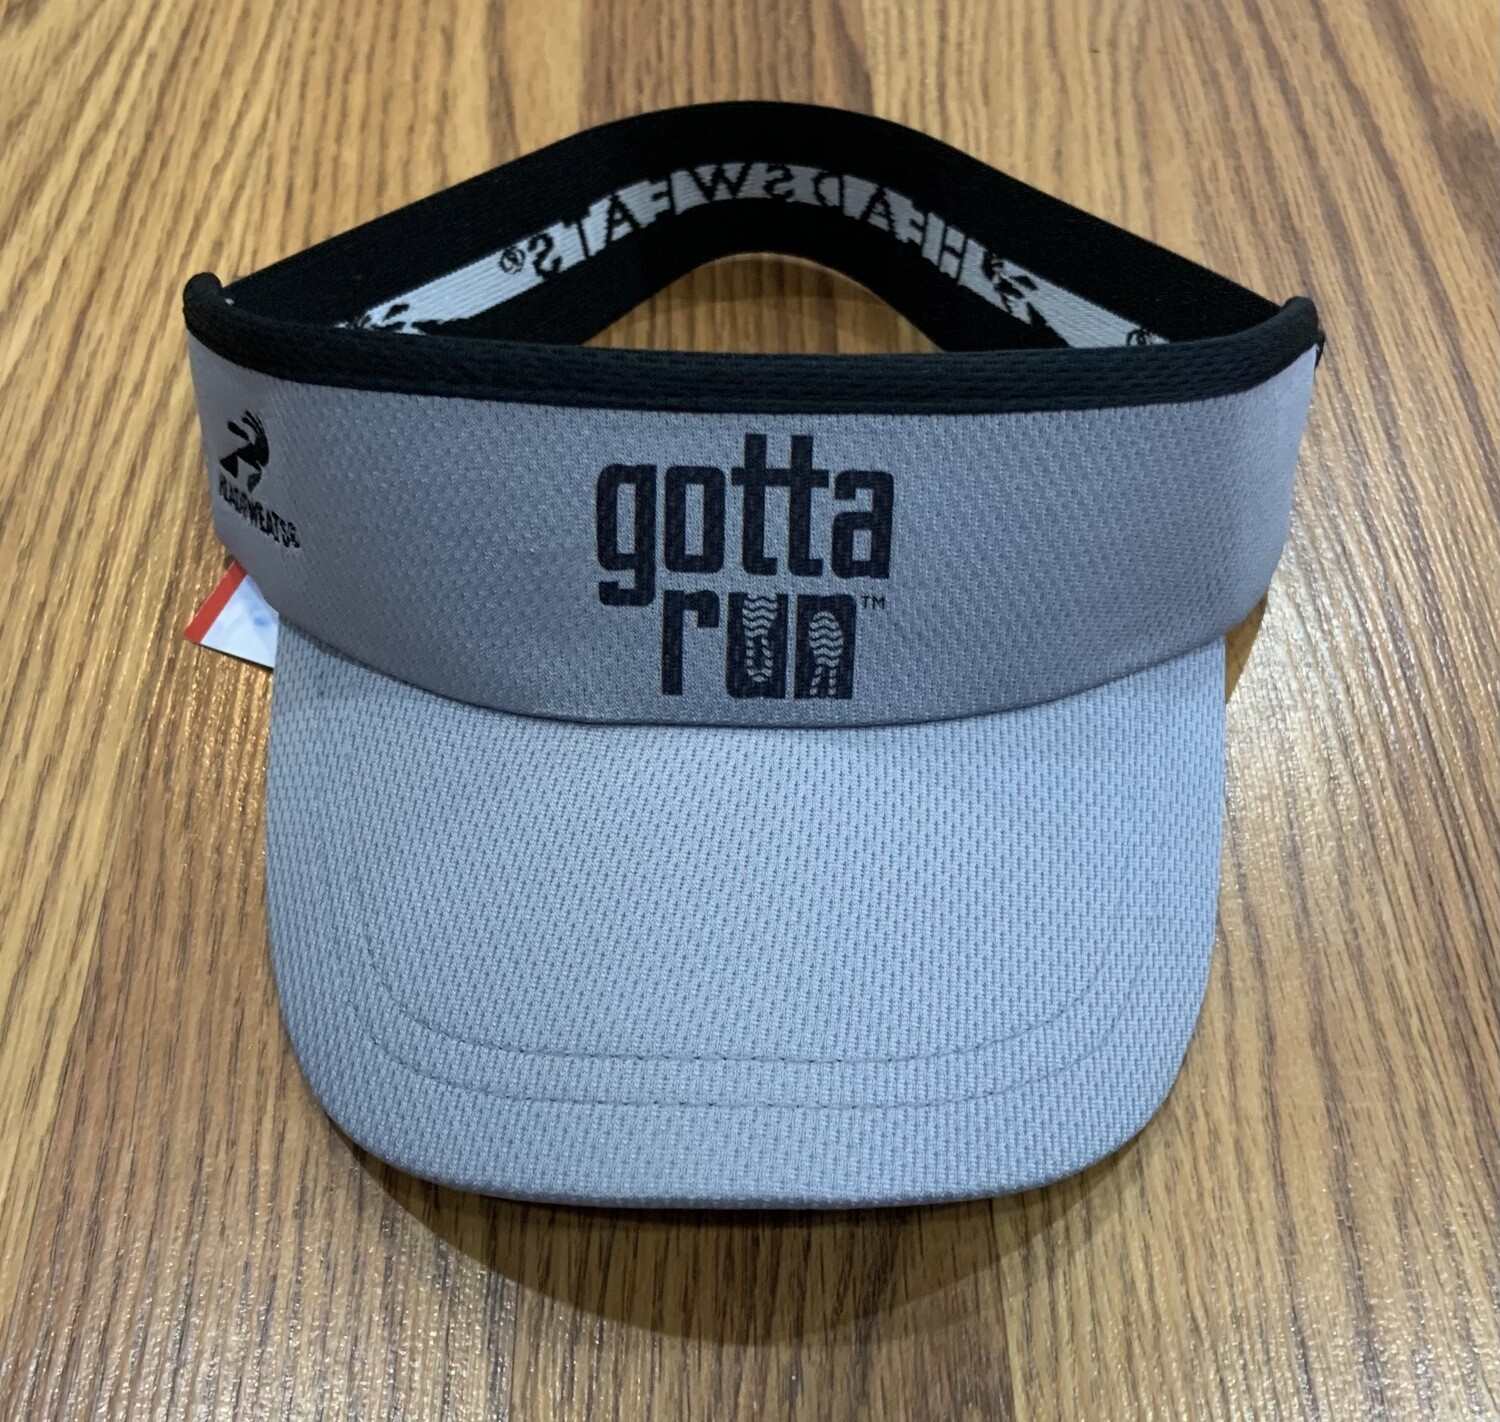 Gotta Run Lifestyle Headsweats Supervisor - Gray with Black written logo